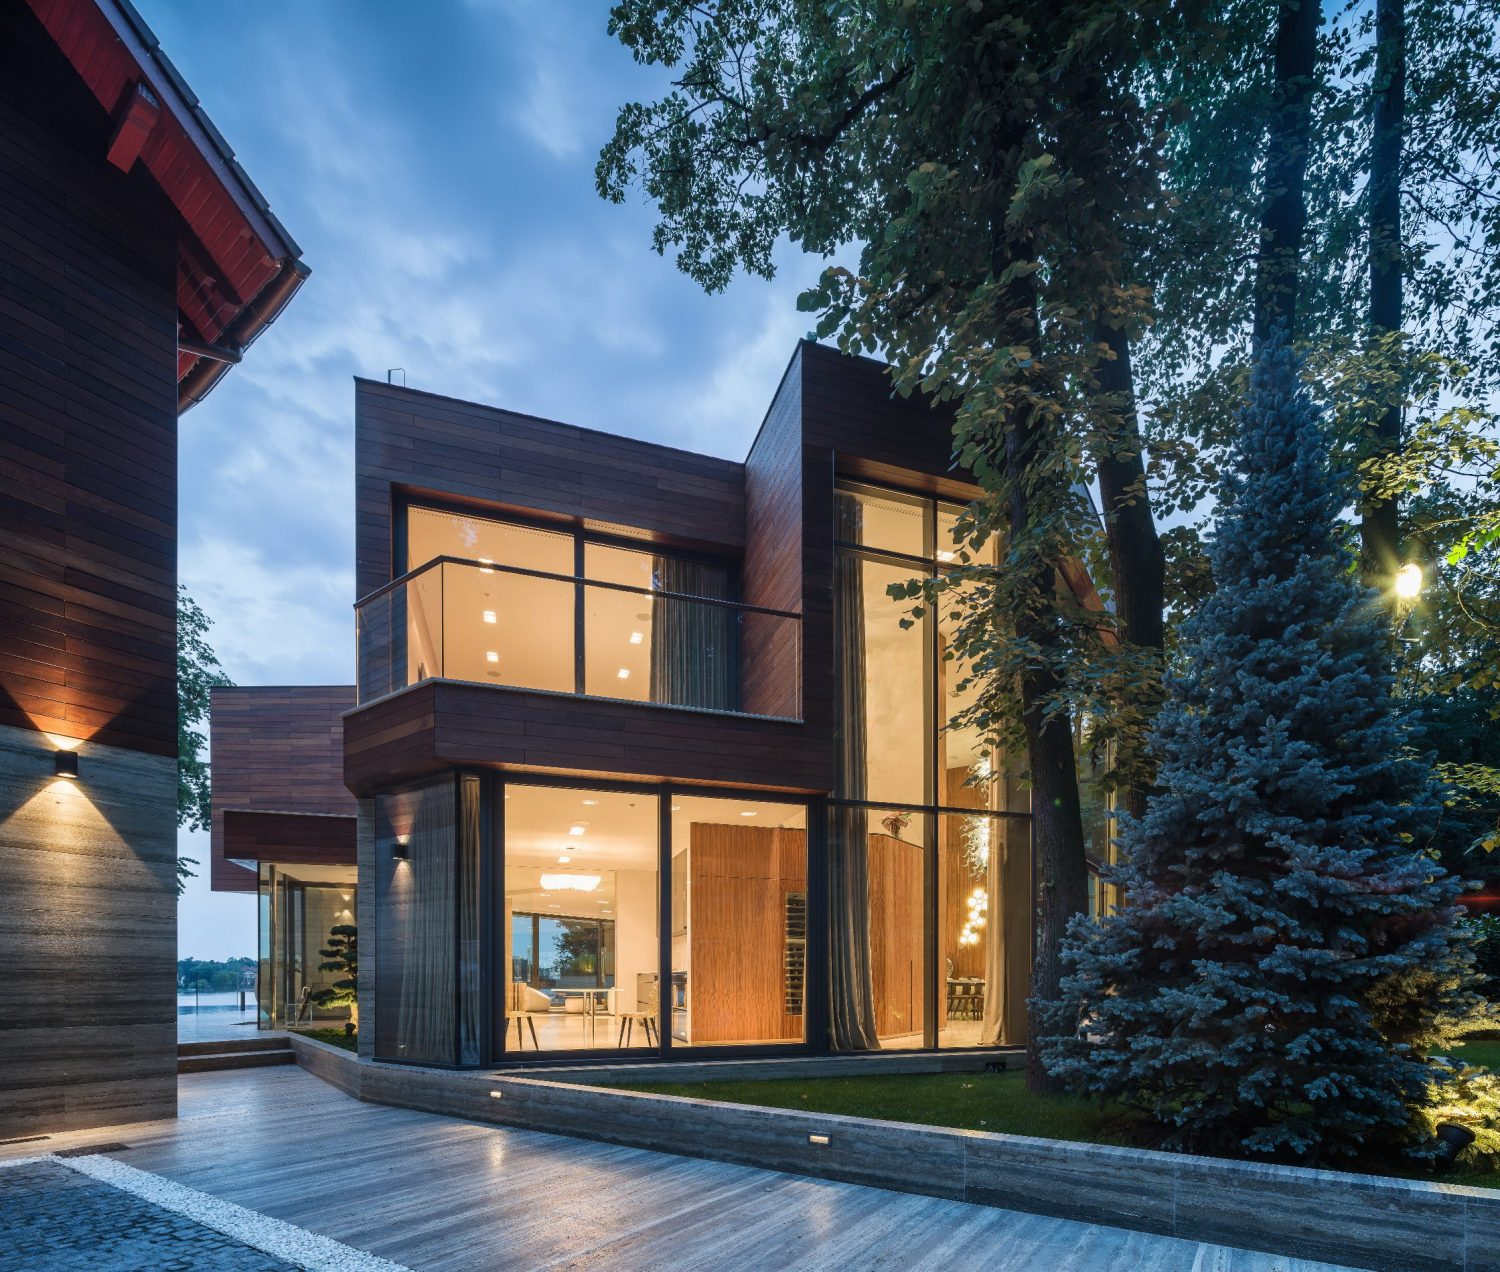 On the Shores of Lake Snagov by DOOI Studio